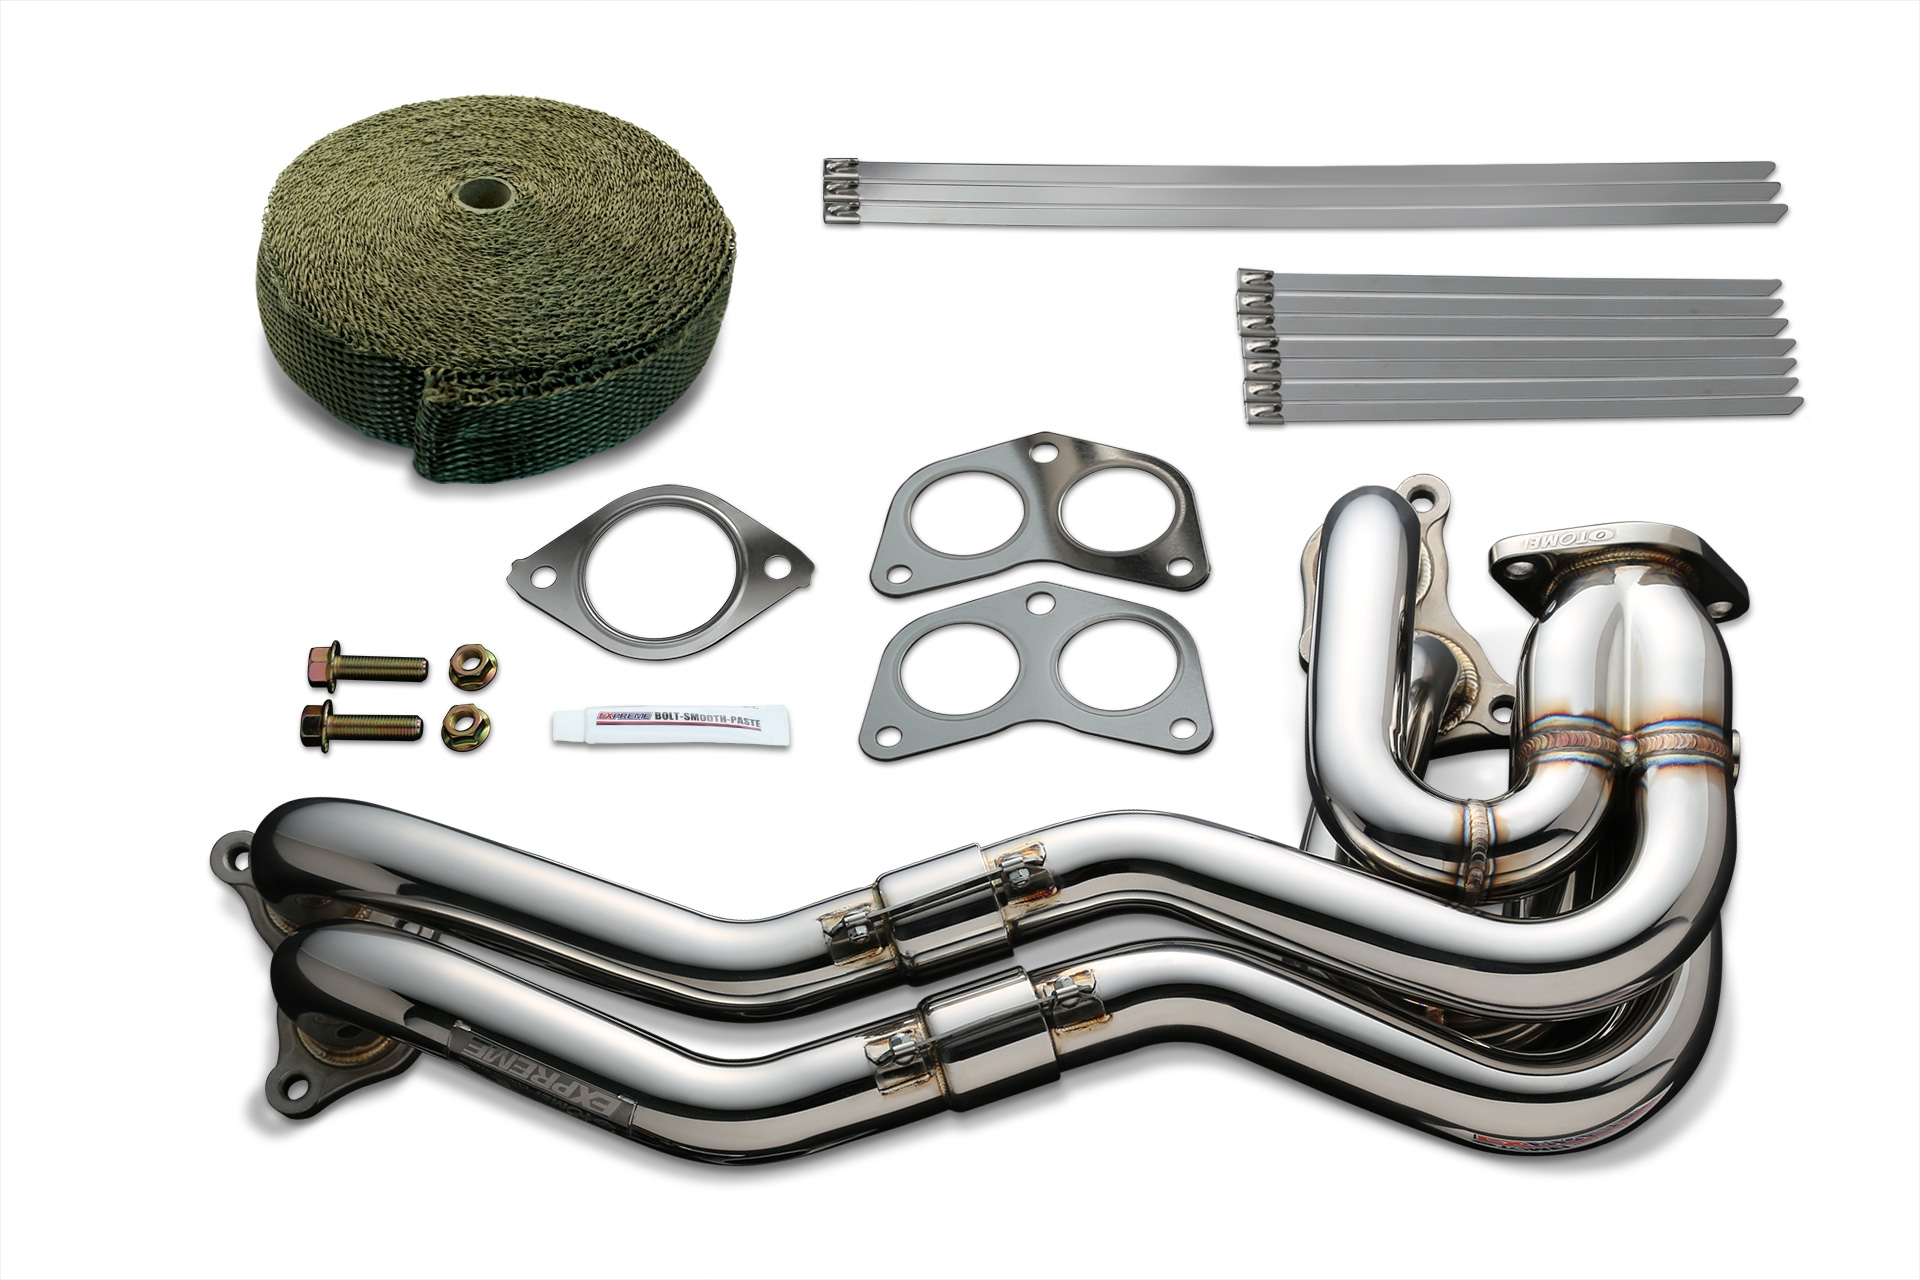 Tomei Exhaust Manifold Kit Expreme FA20 ZN6/ZC6 Unequal Length with Titan Exhaust Bandage - Subaru BRZ / Scion FR-S / Toyota 86